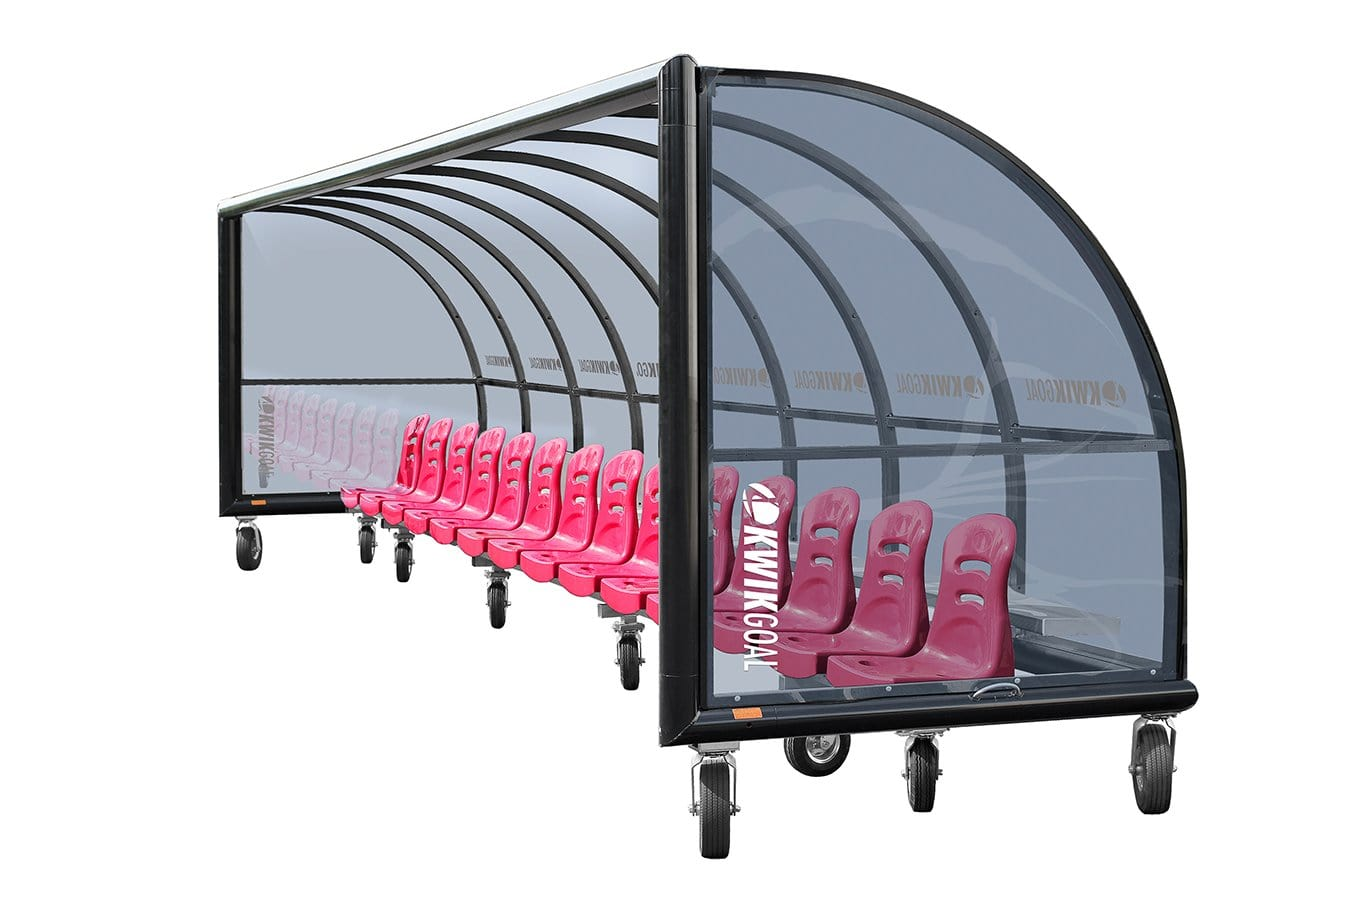 Grey-tinted Polycarbonate Shelter & Molded Seats With Wheels